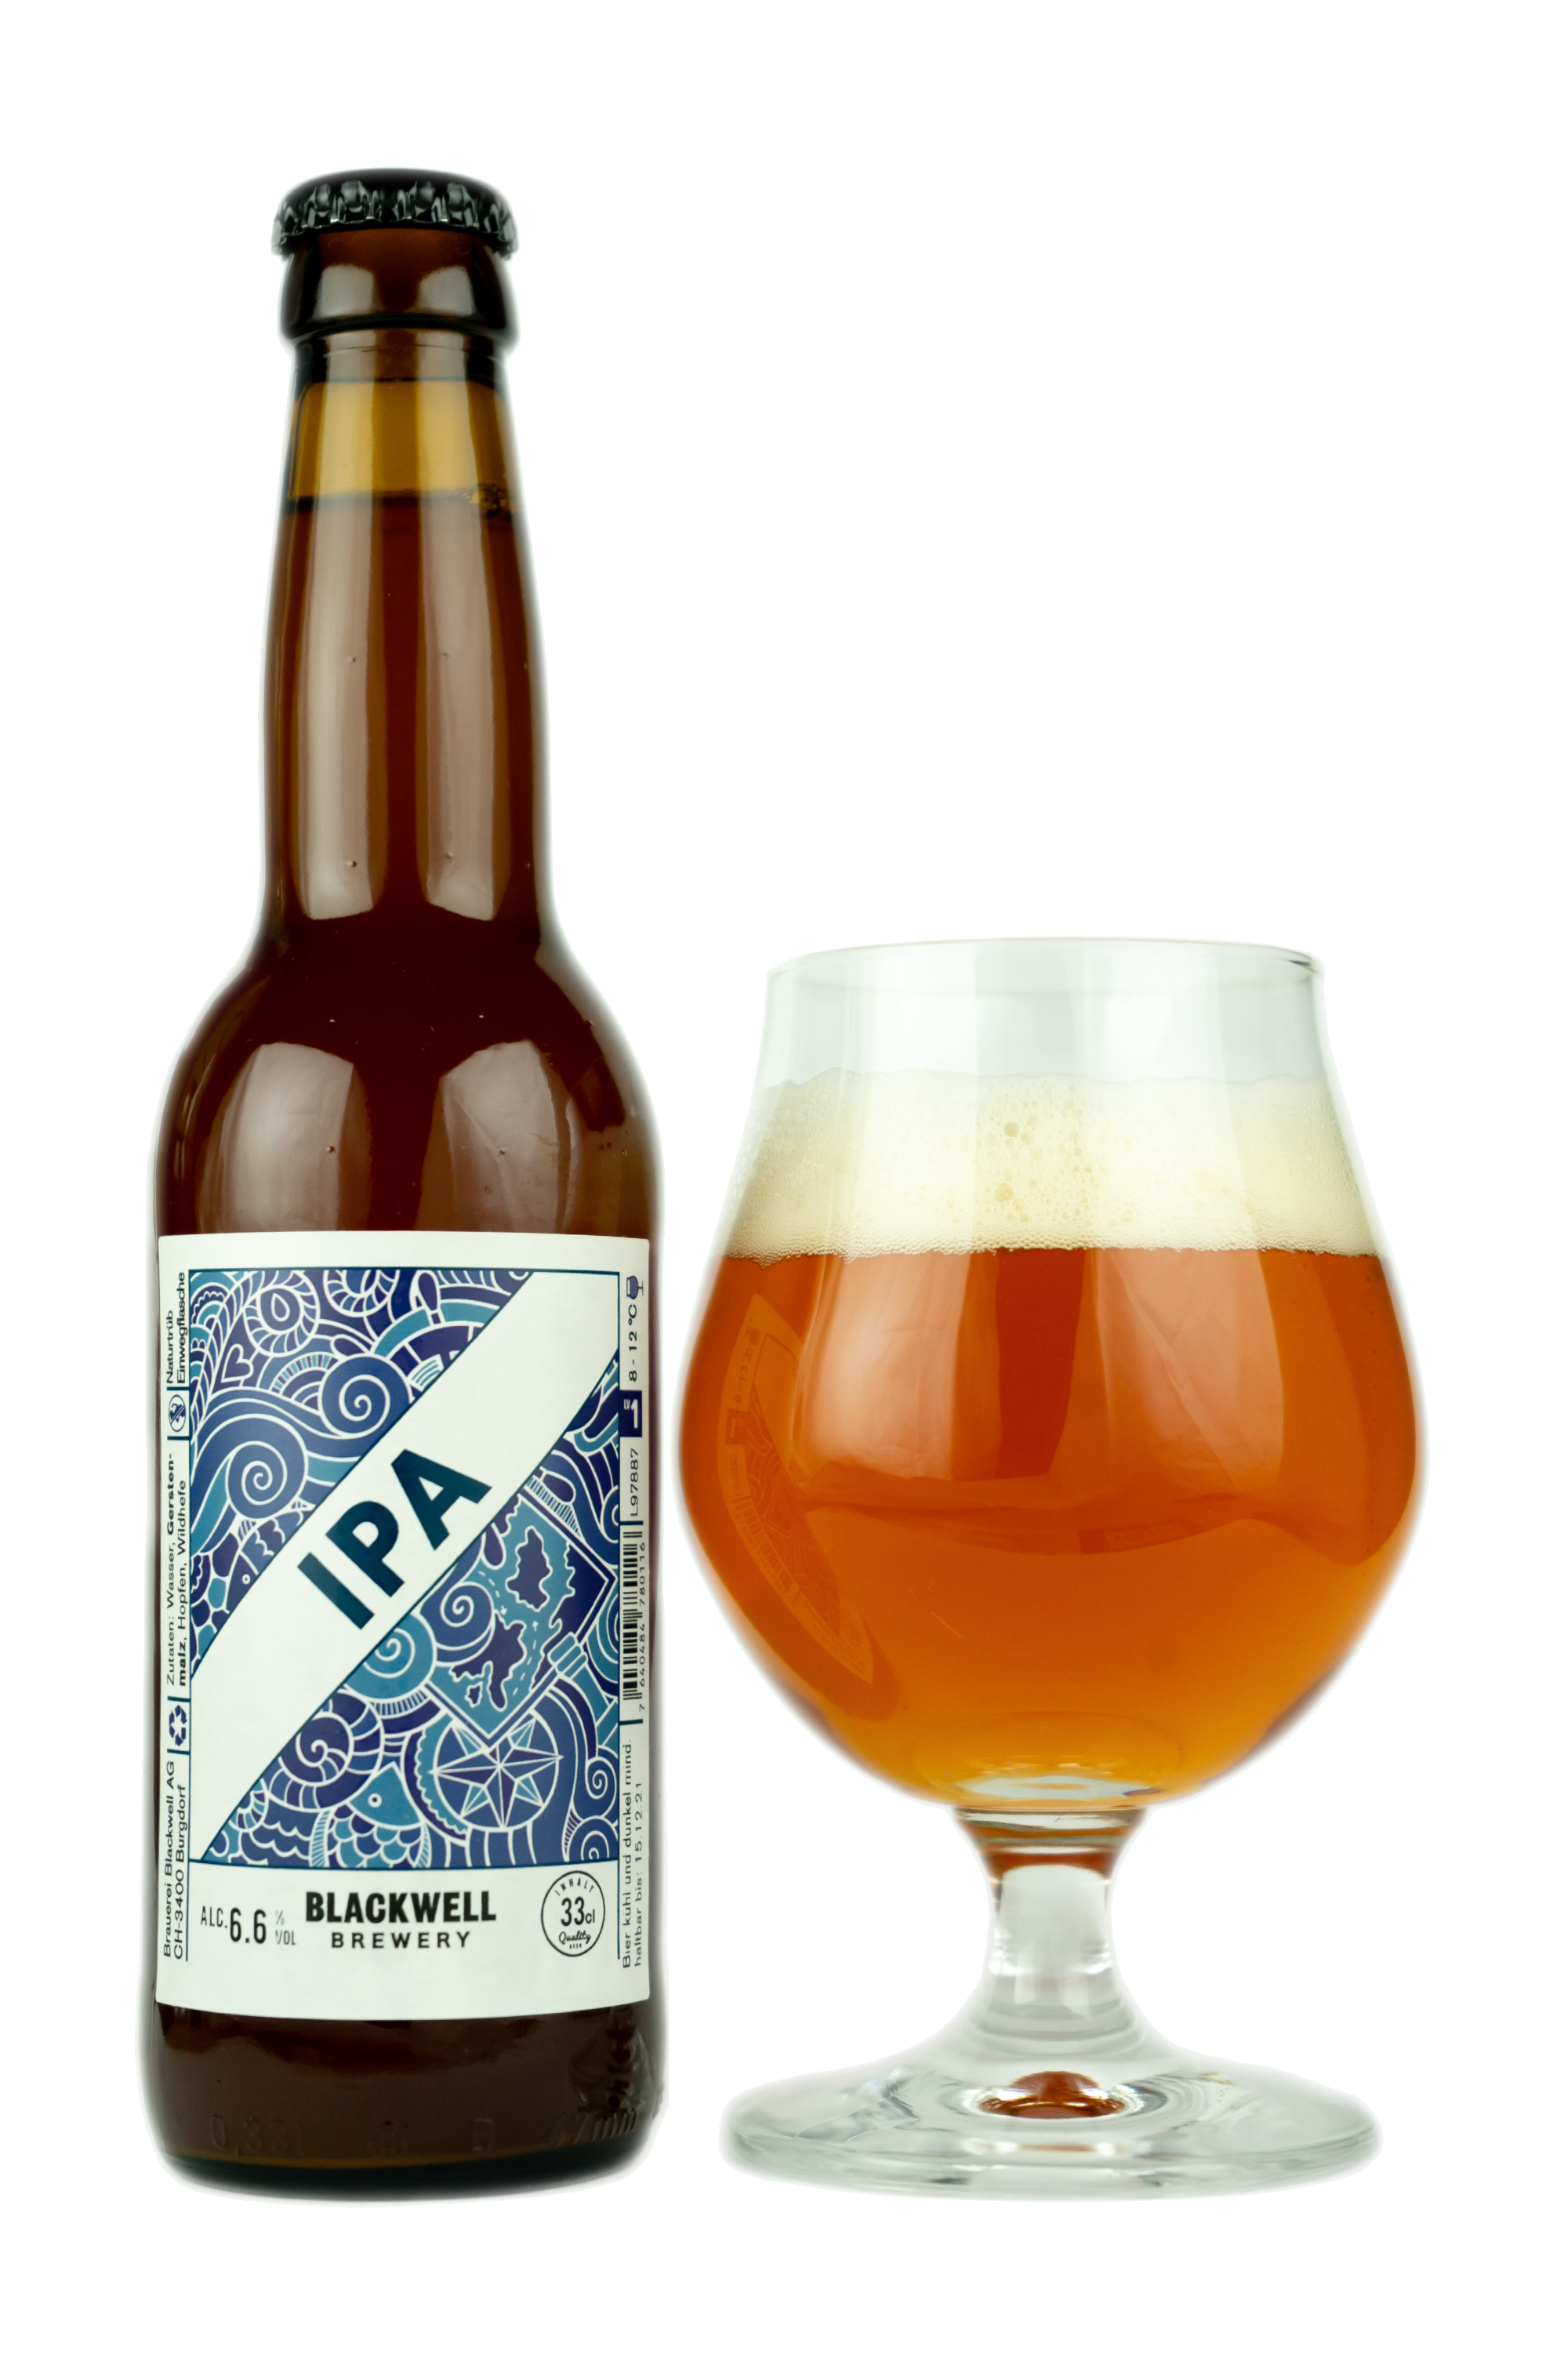 https://blackwellbrewery.ch/wp-content/uploads/2021/10/BierGlas_33CL_IPA.png